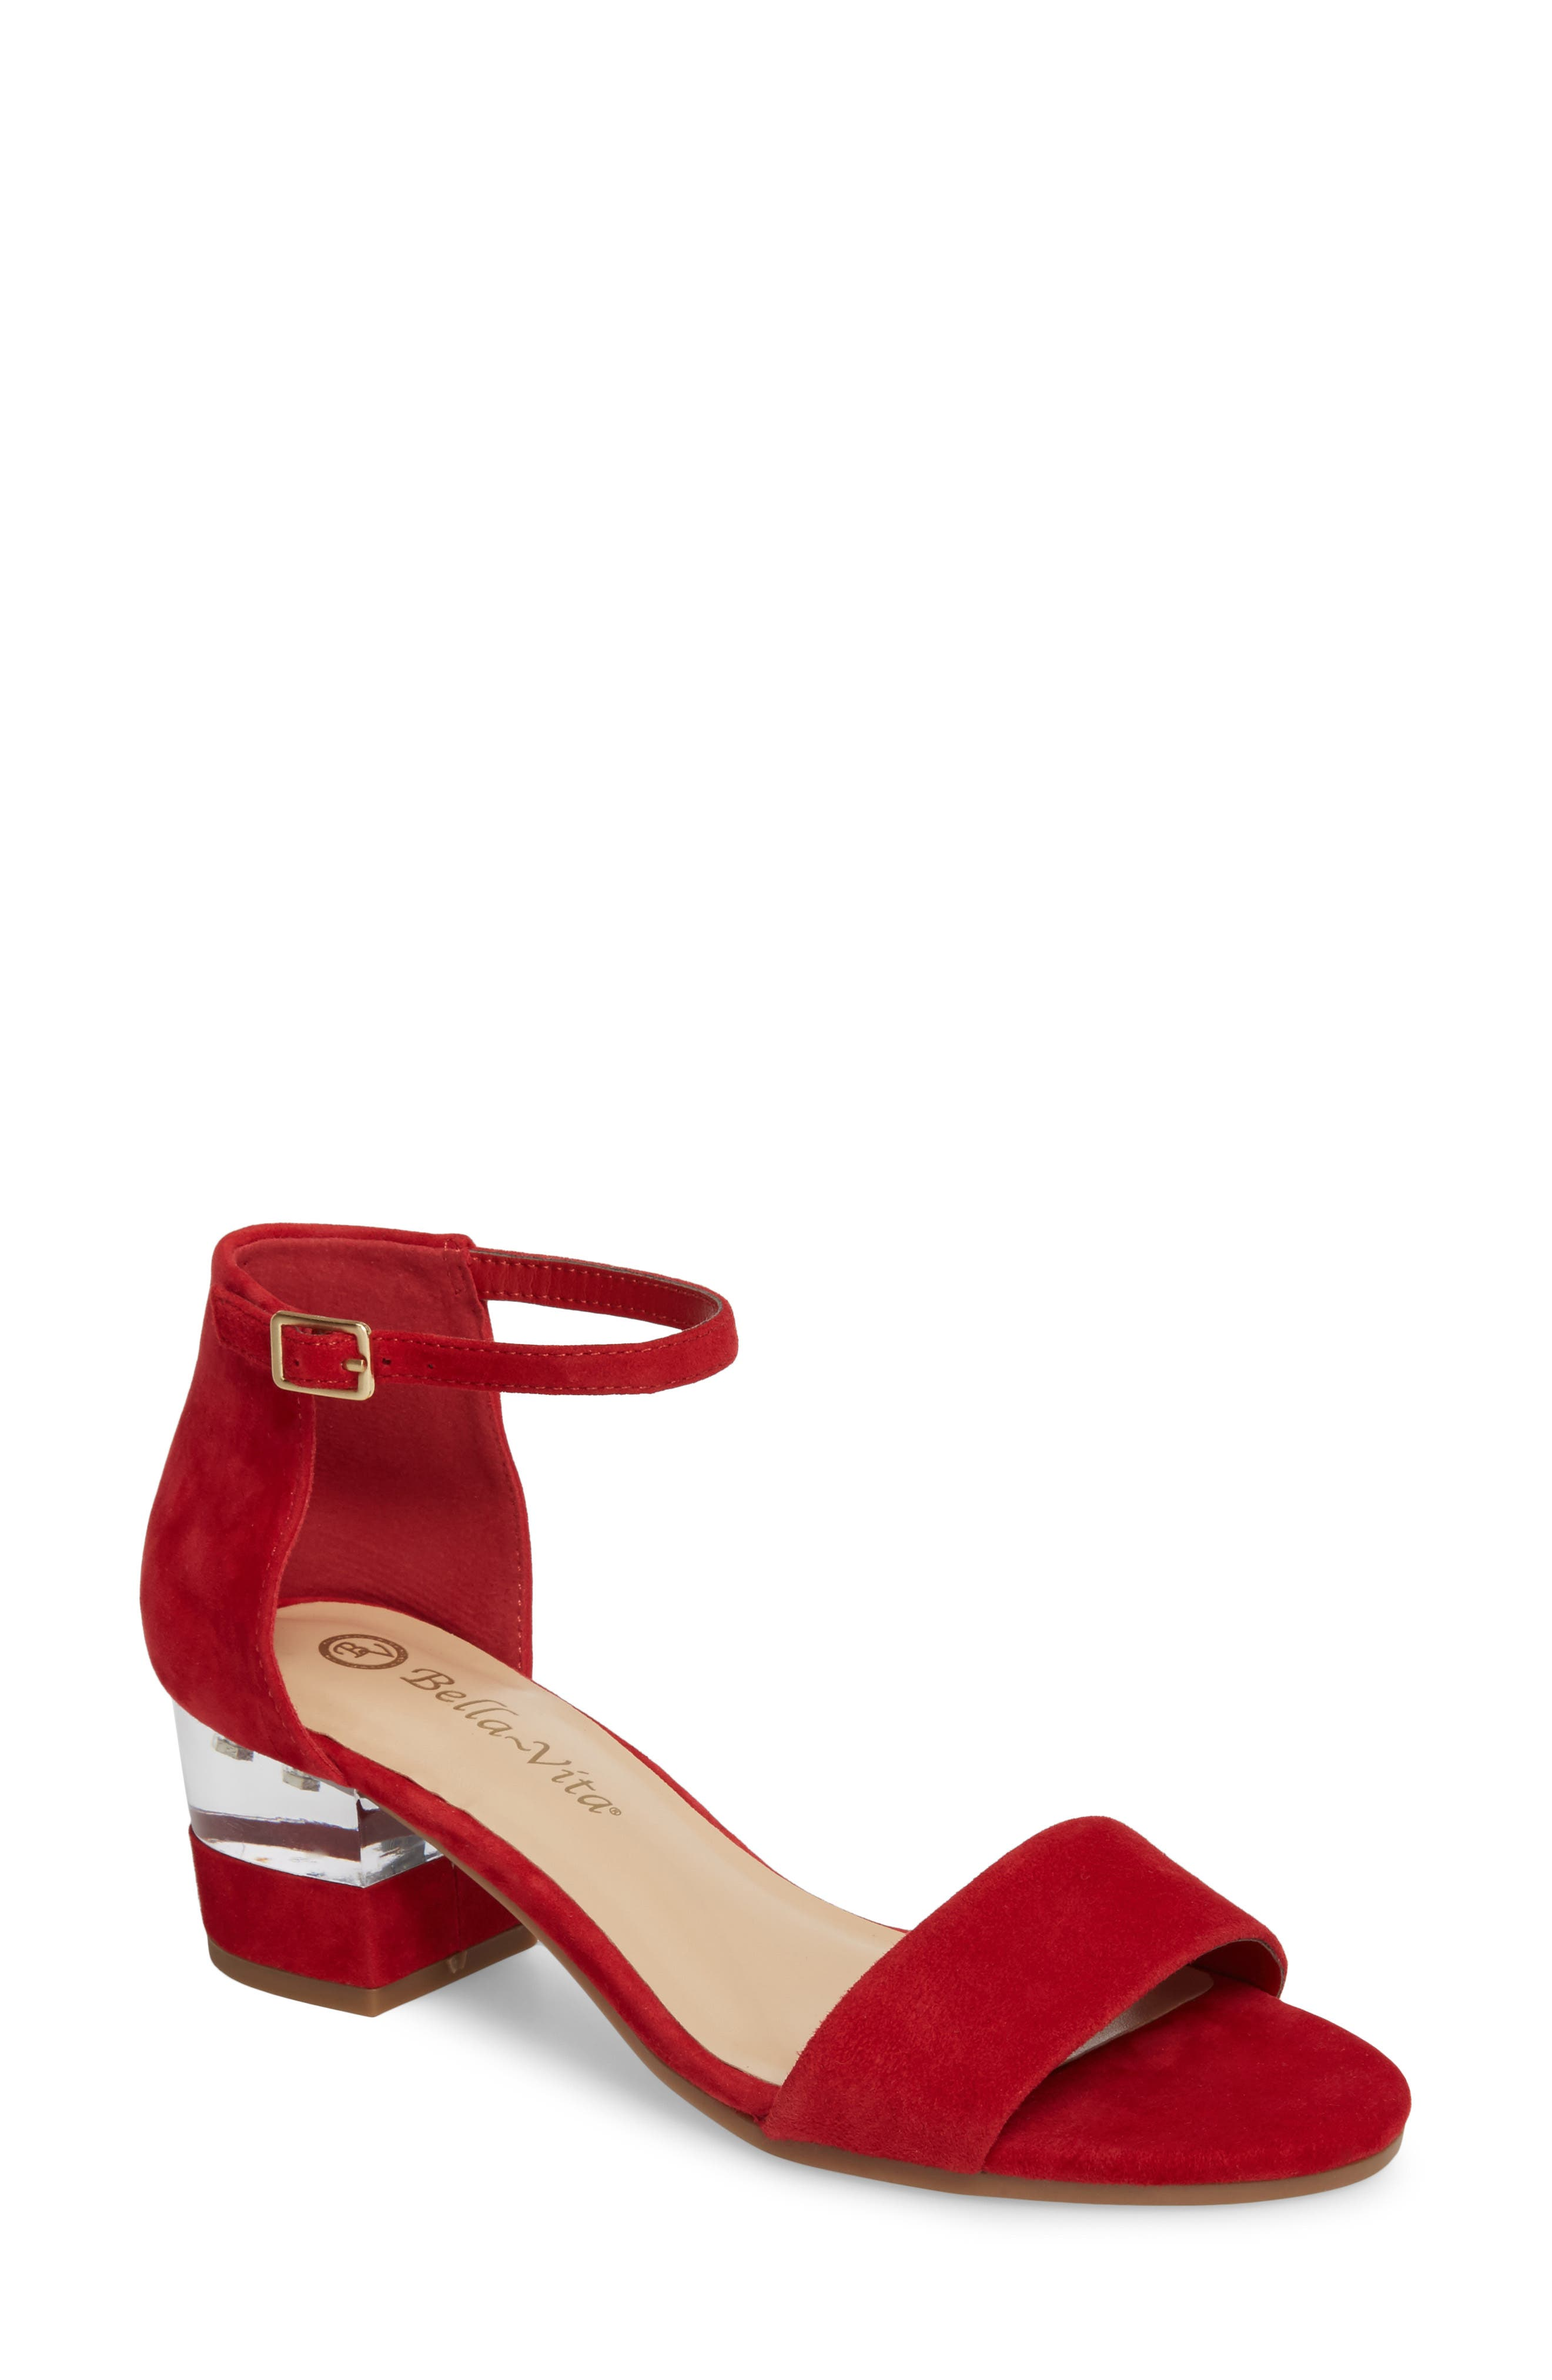 Fitz Block Heel Sandal,                             Main thumbnail 1, color,                             Red Suede